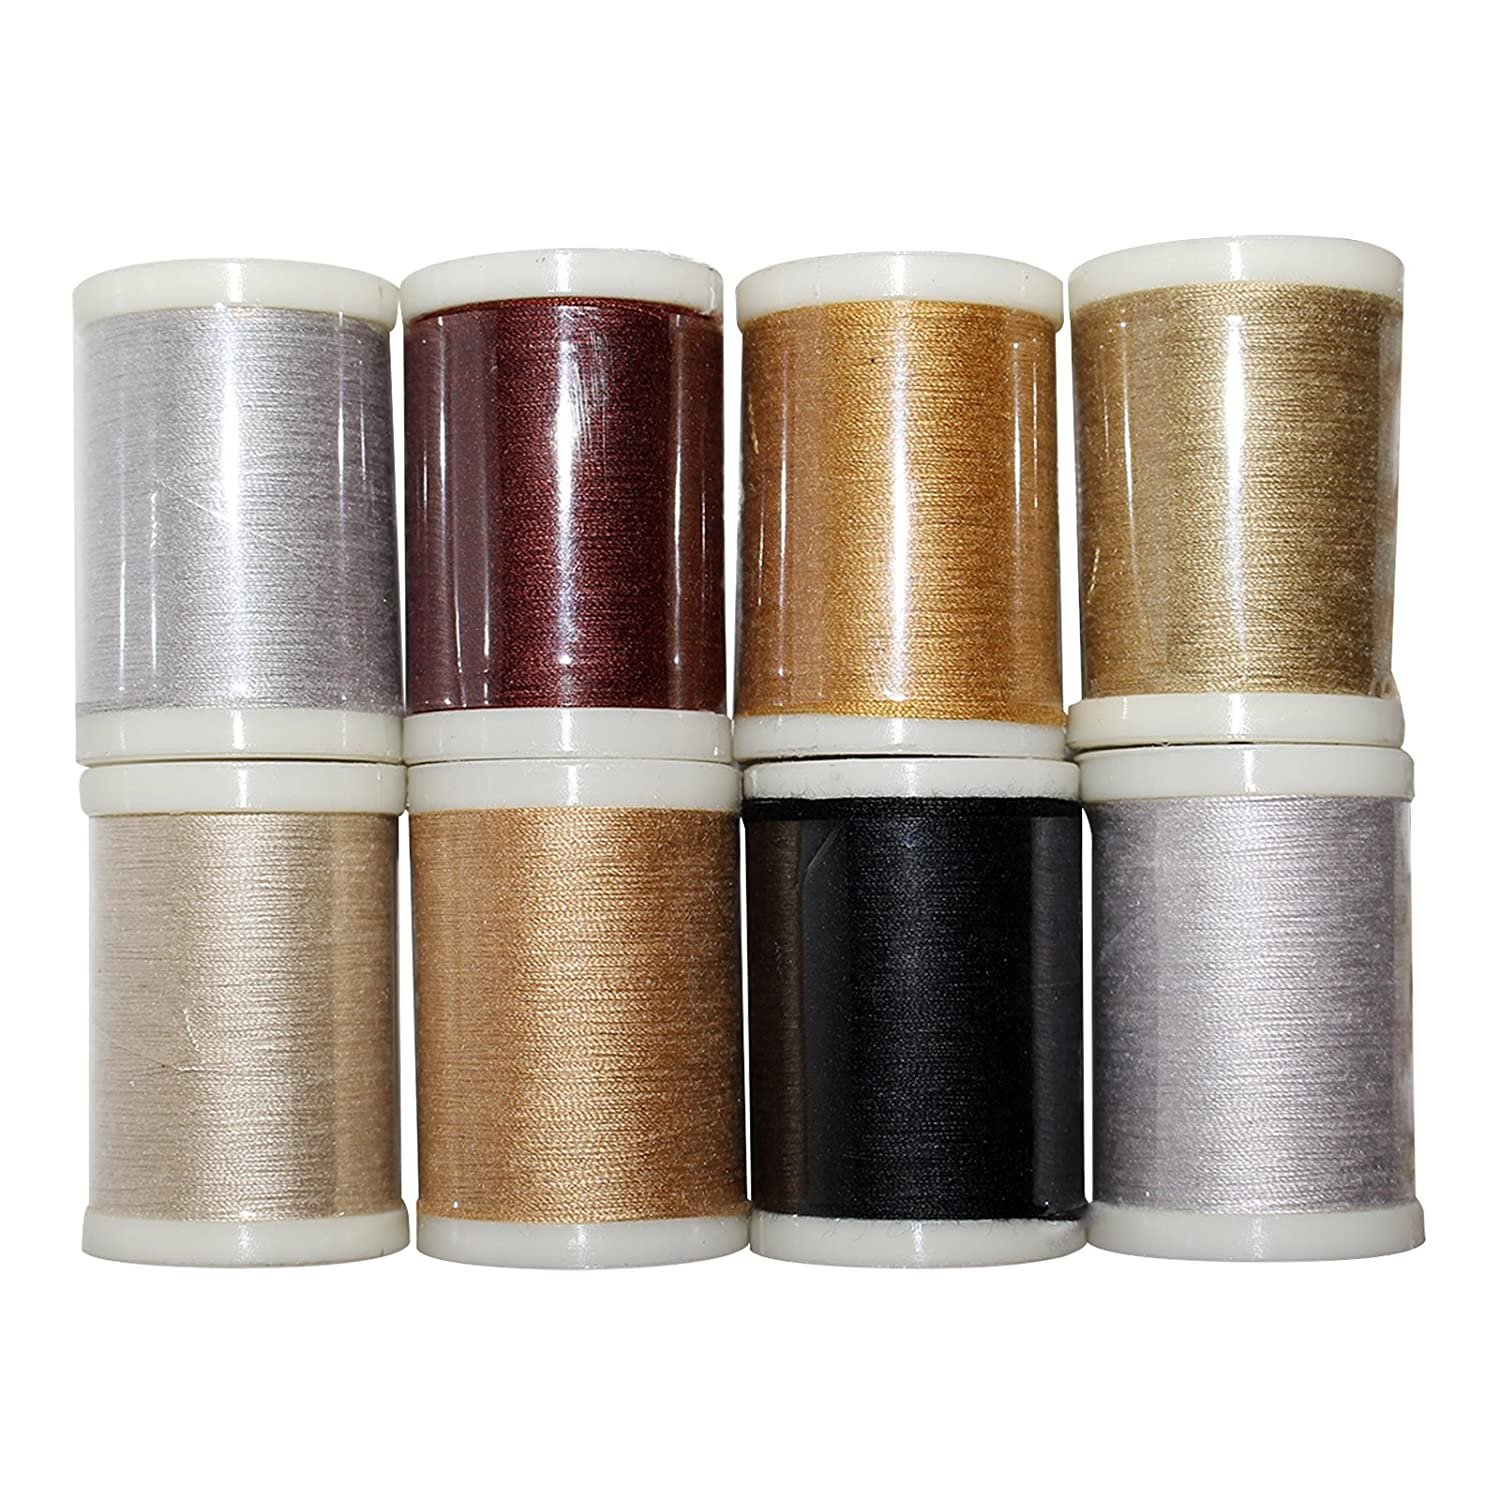 Curtzy 8 Pack of Polyester Sewing Thread - Assorted Colours Embroidery Spools Set- Ideal for Machine Overlock, Sewing, Cross Stitch and Hand Needle Work - Kit for Arts and Crafts CH-210